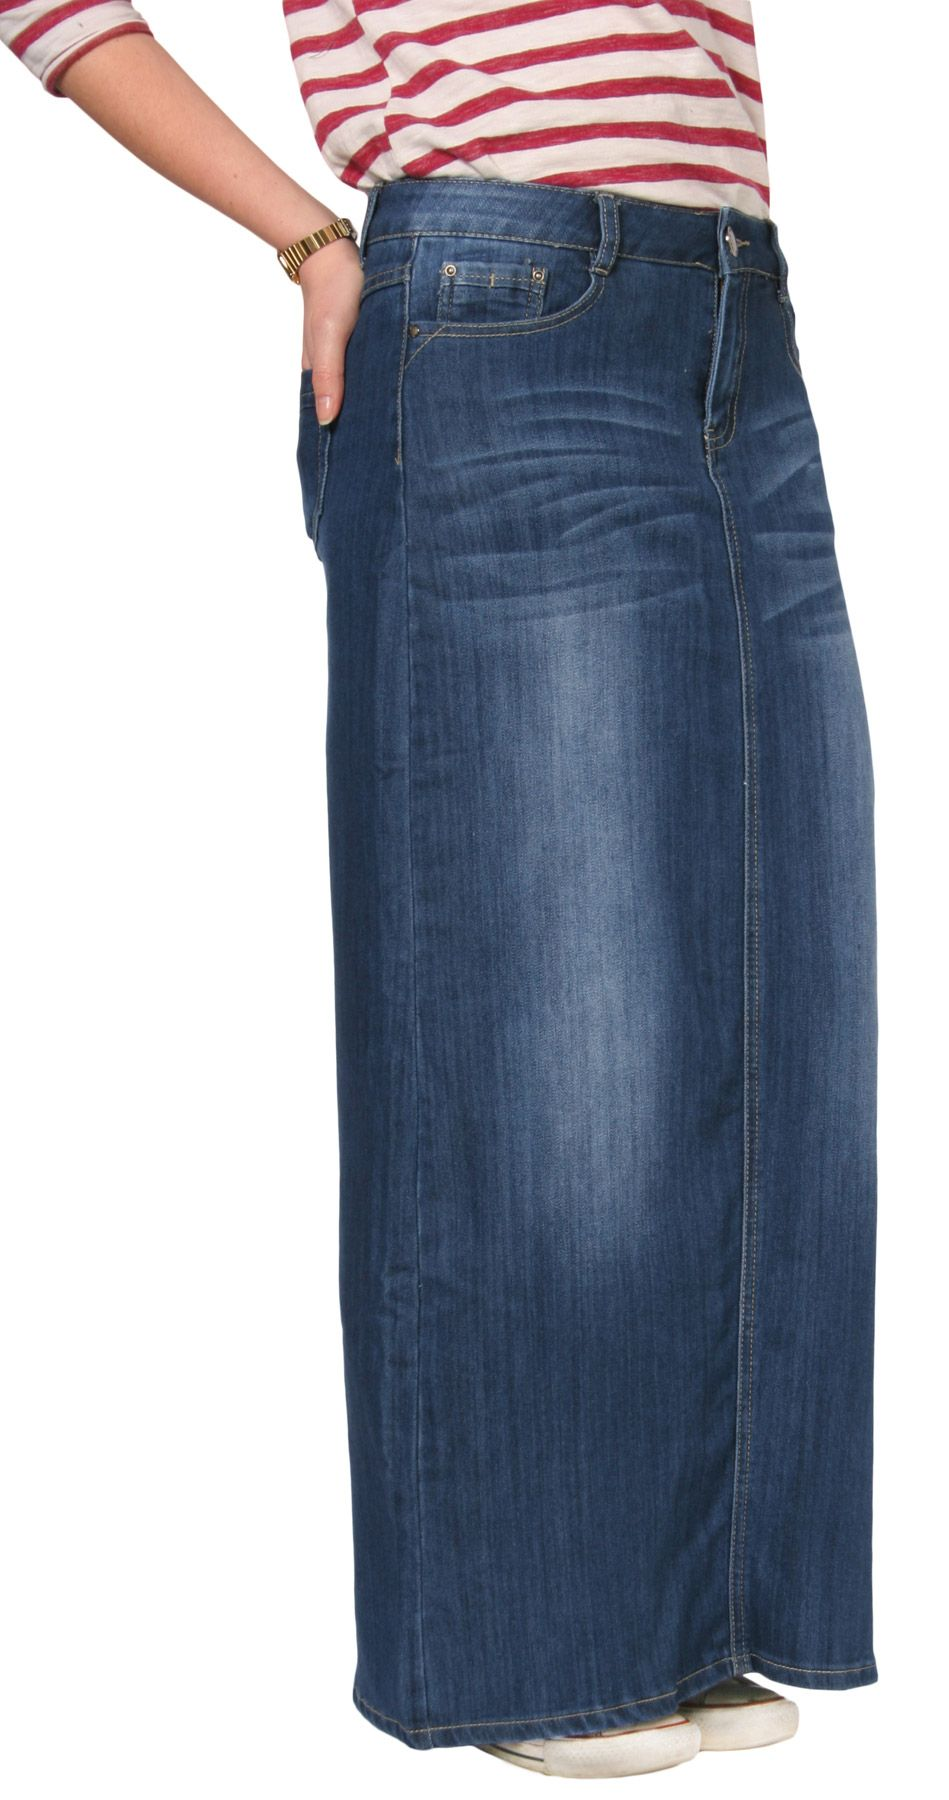 Fabulous full length denim skirt with belt loops & front zip ...